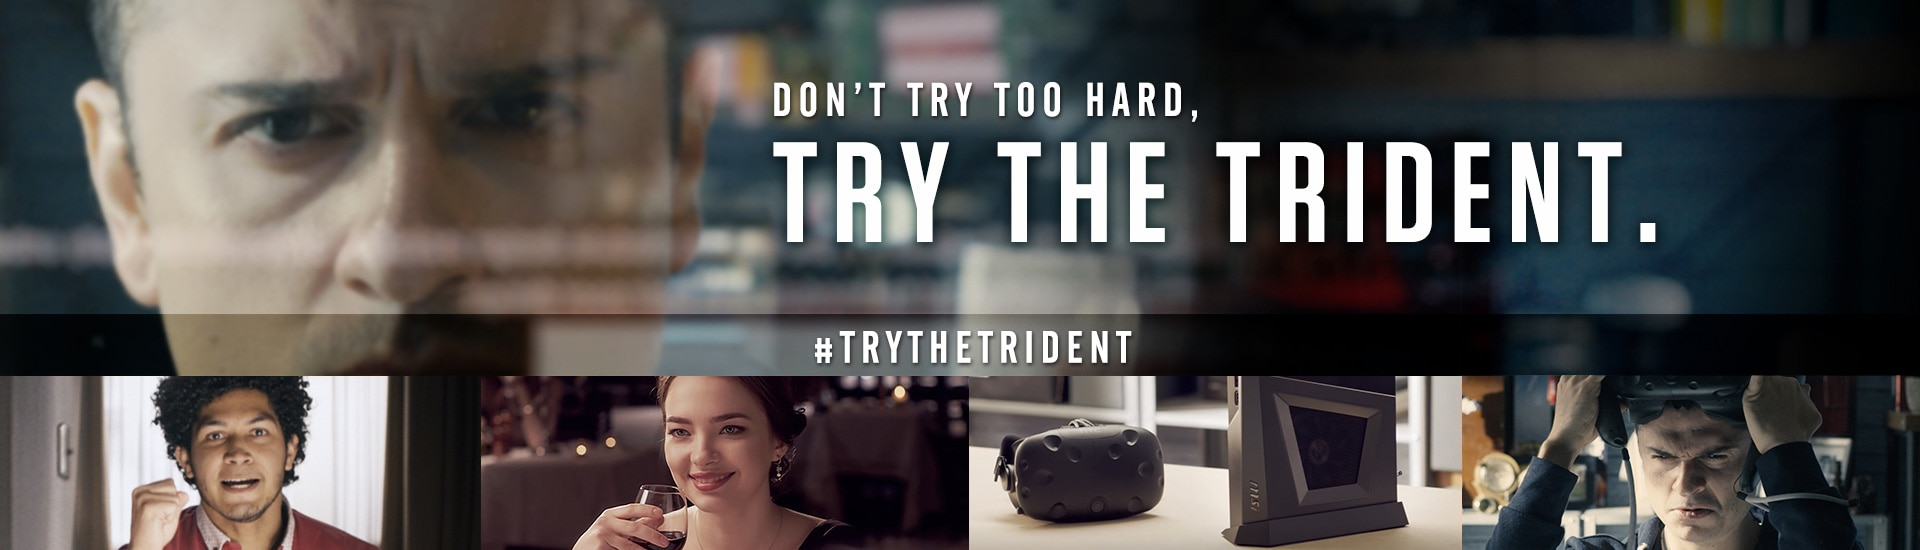 Try the Trident